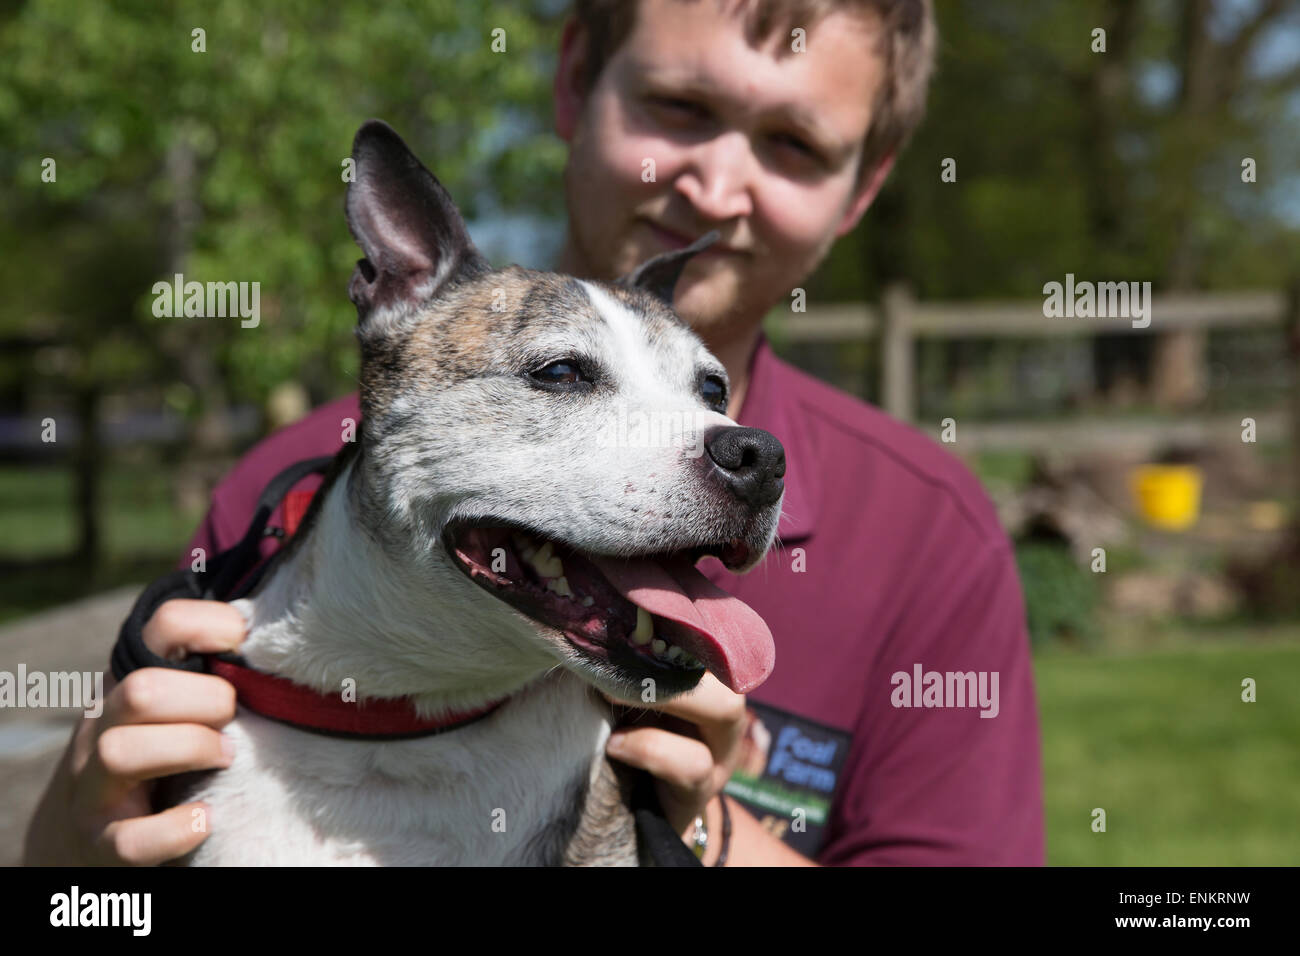 Staffordshire Bull Terrier Marvin has been rescued from Euthanasia by Foal Farm animal rescue  centre - Stock Image